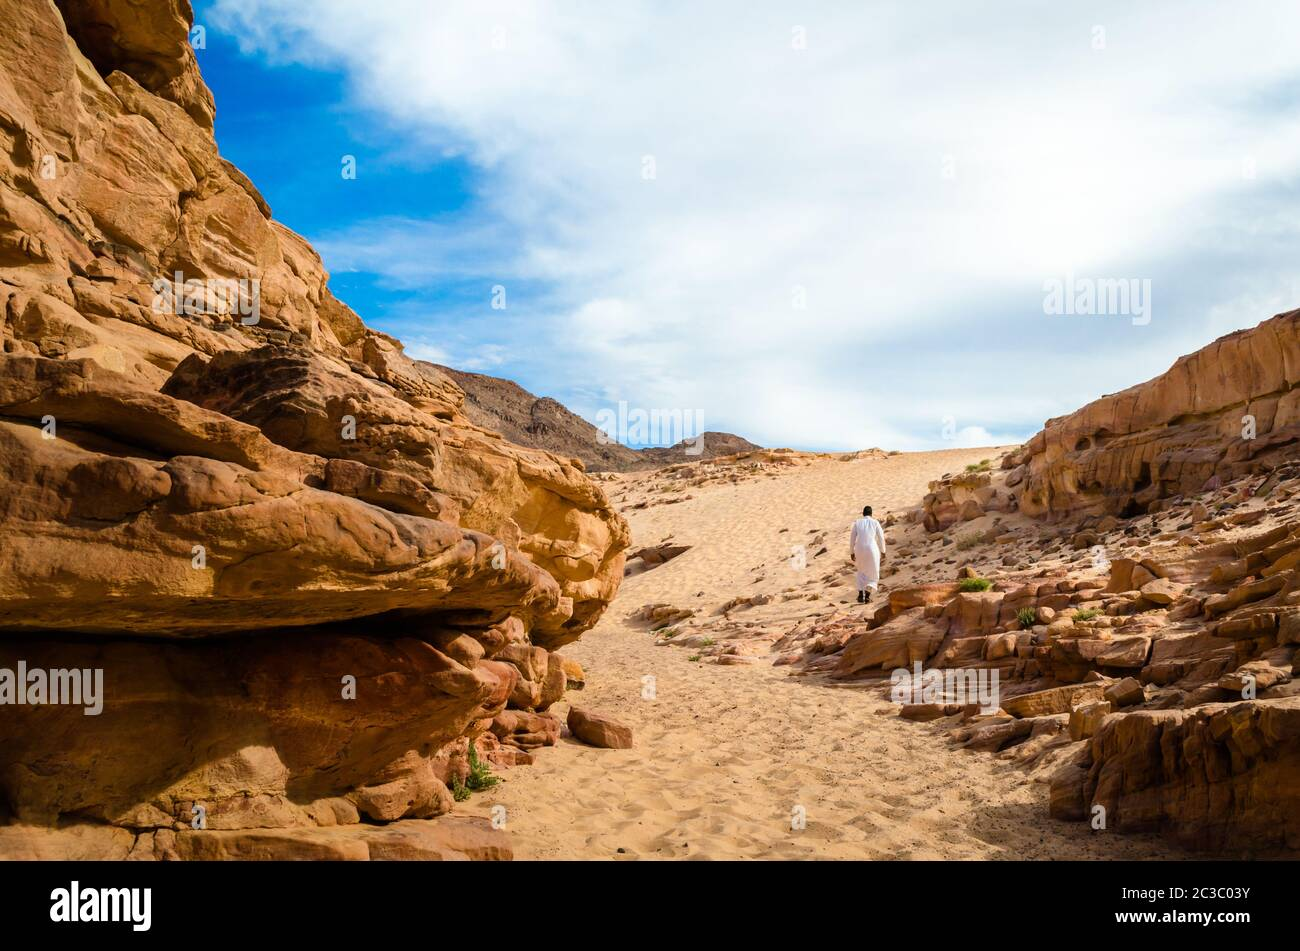 man in white arab clothing walks in a colored canyon in Egypt Dahab South Sinai Stock Photo